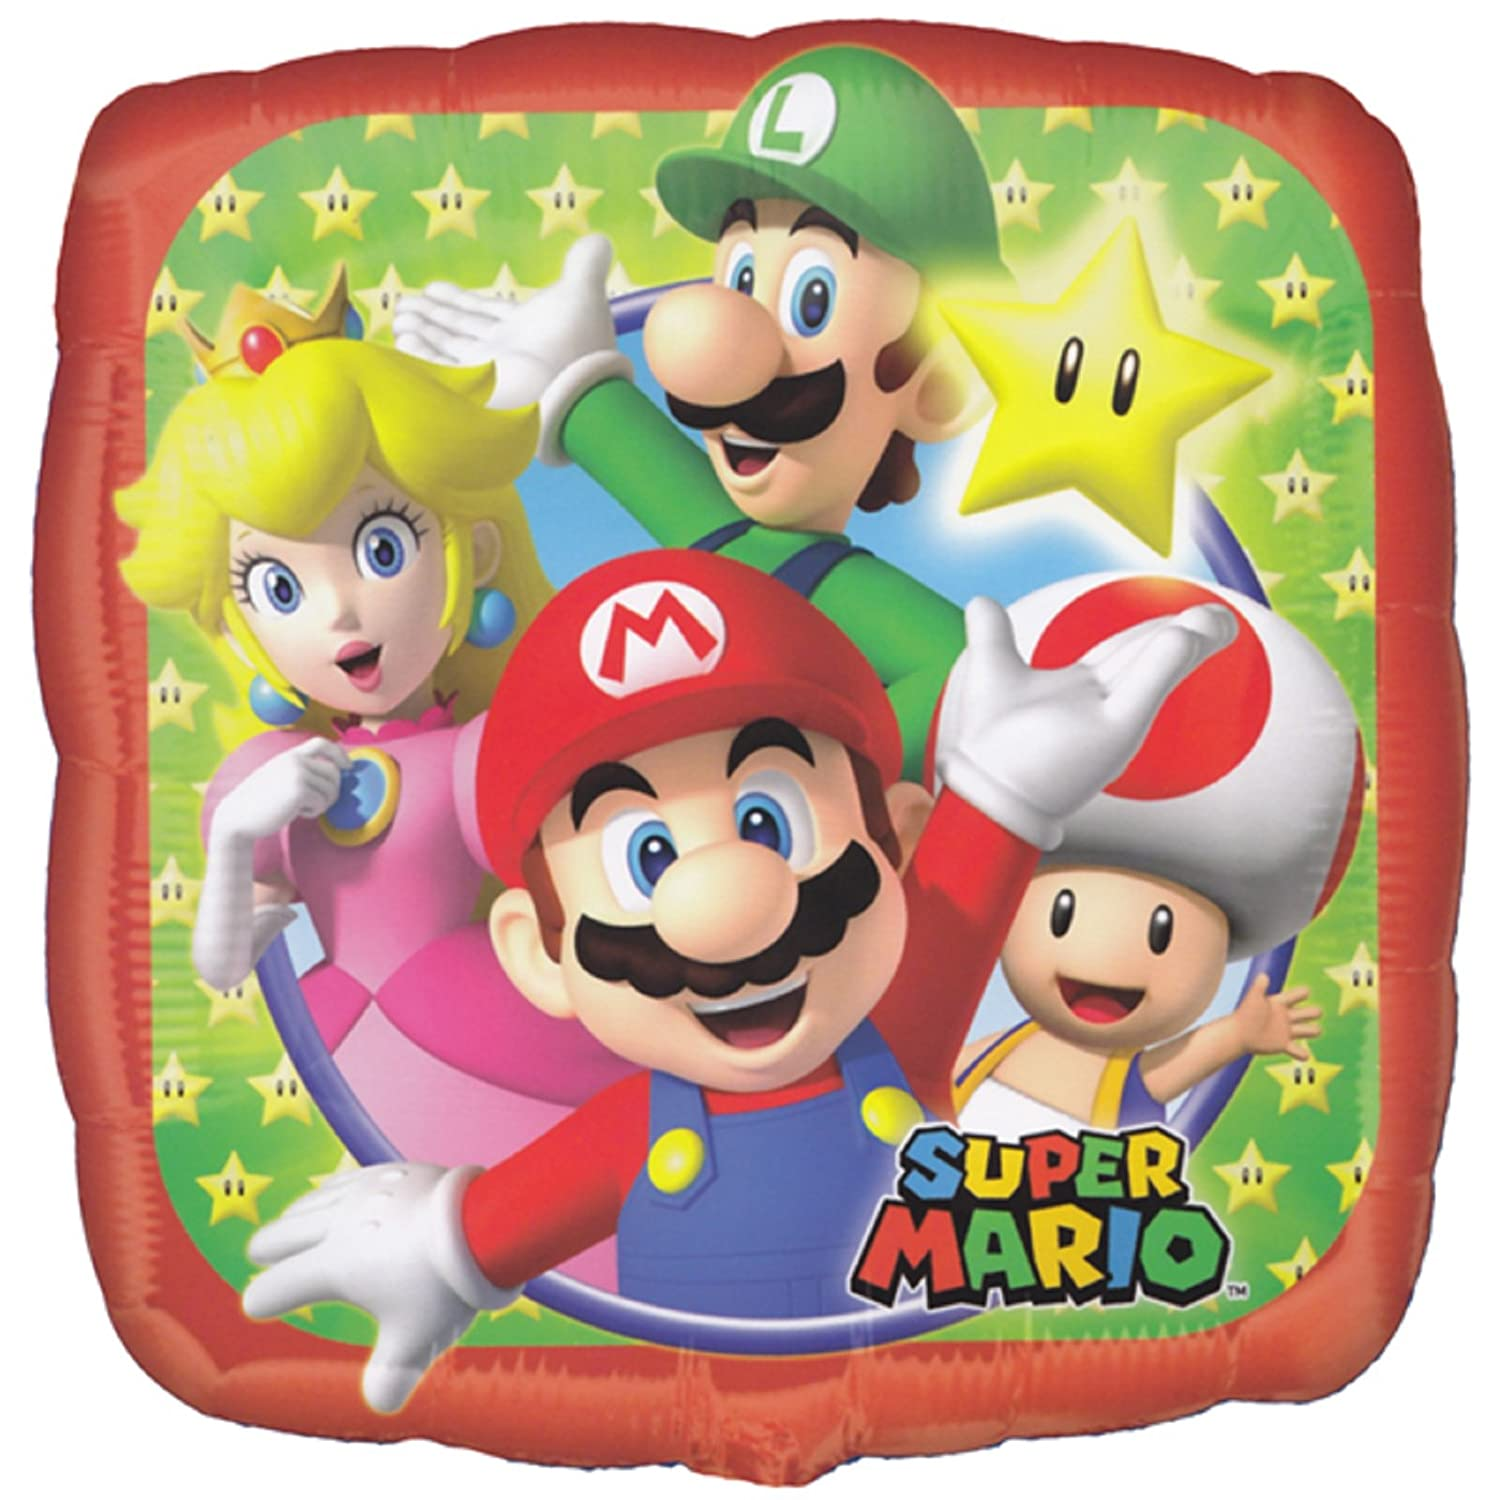 Amazon.com: Super Mario Bros forma cuadrada globo 17 ...